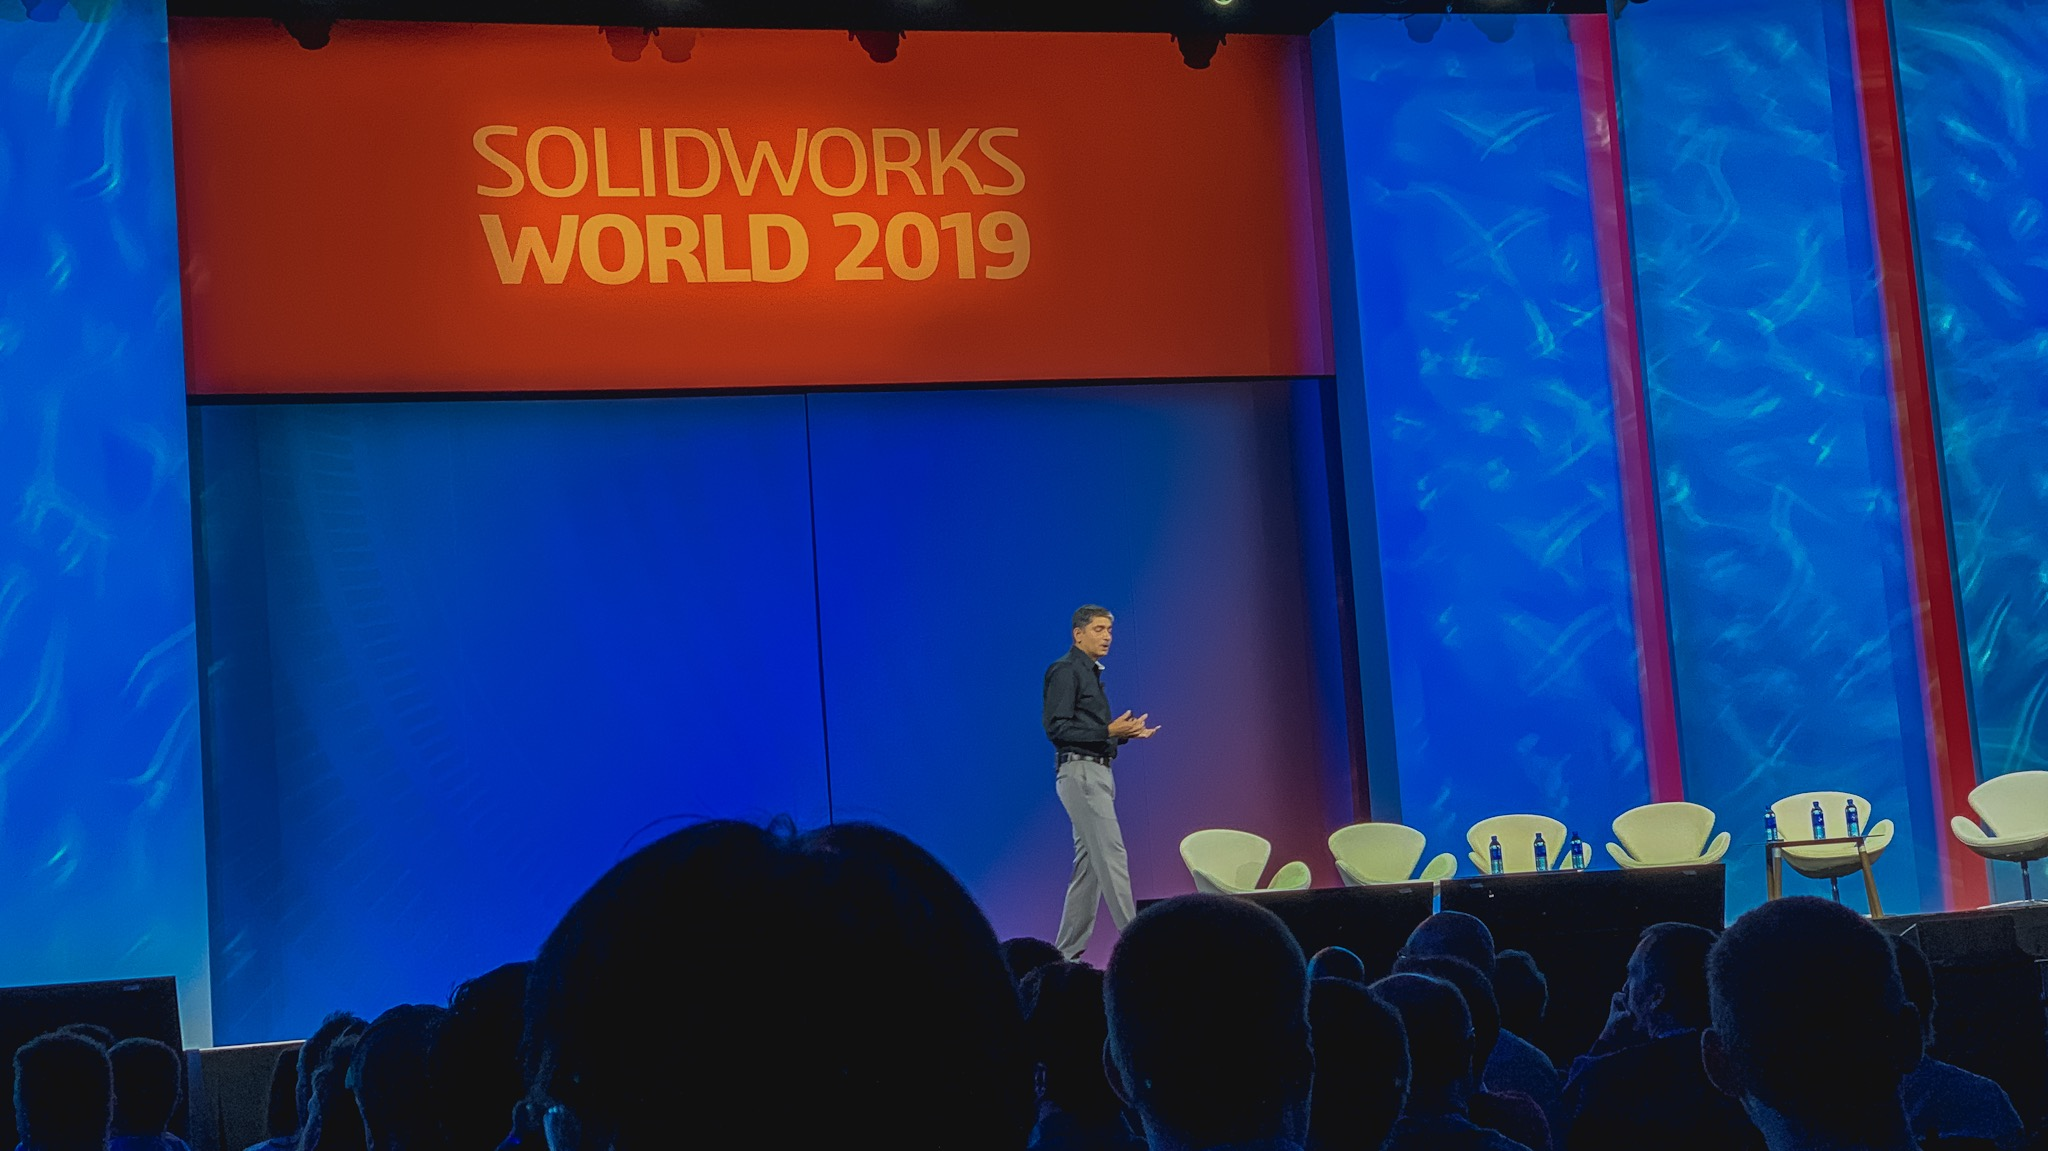 Entenda como funciona o 3DEXPERIENCE | SOLIDWORKS WORLD 2019